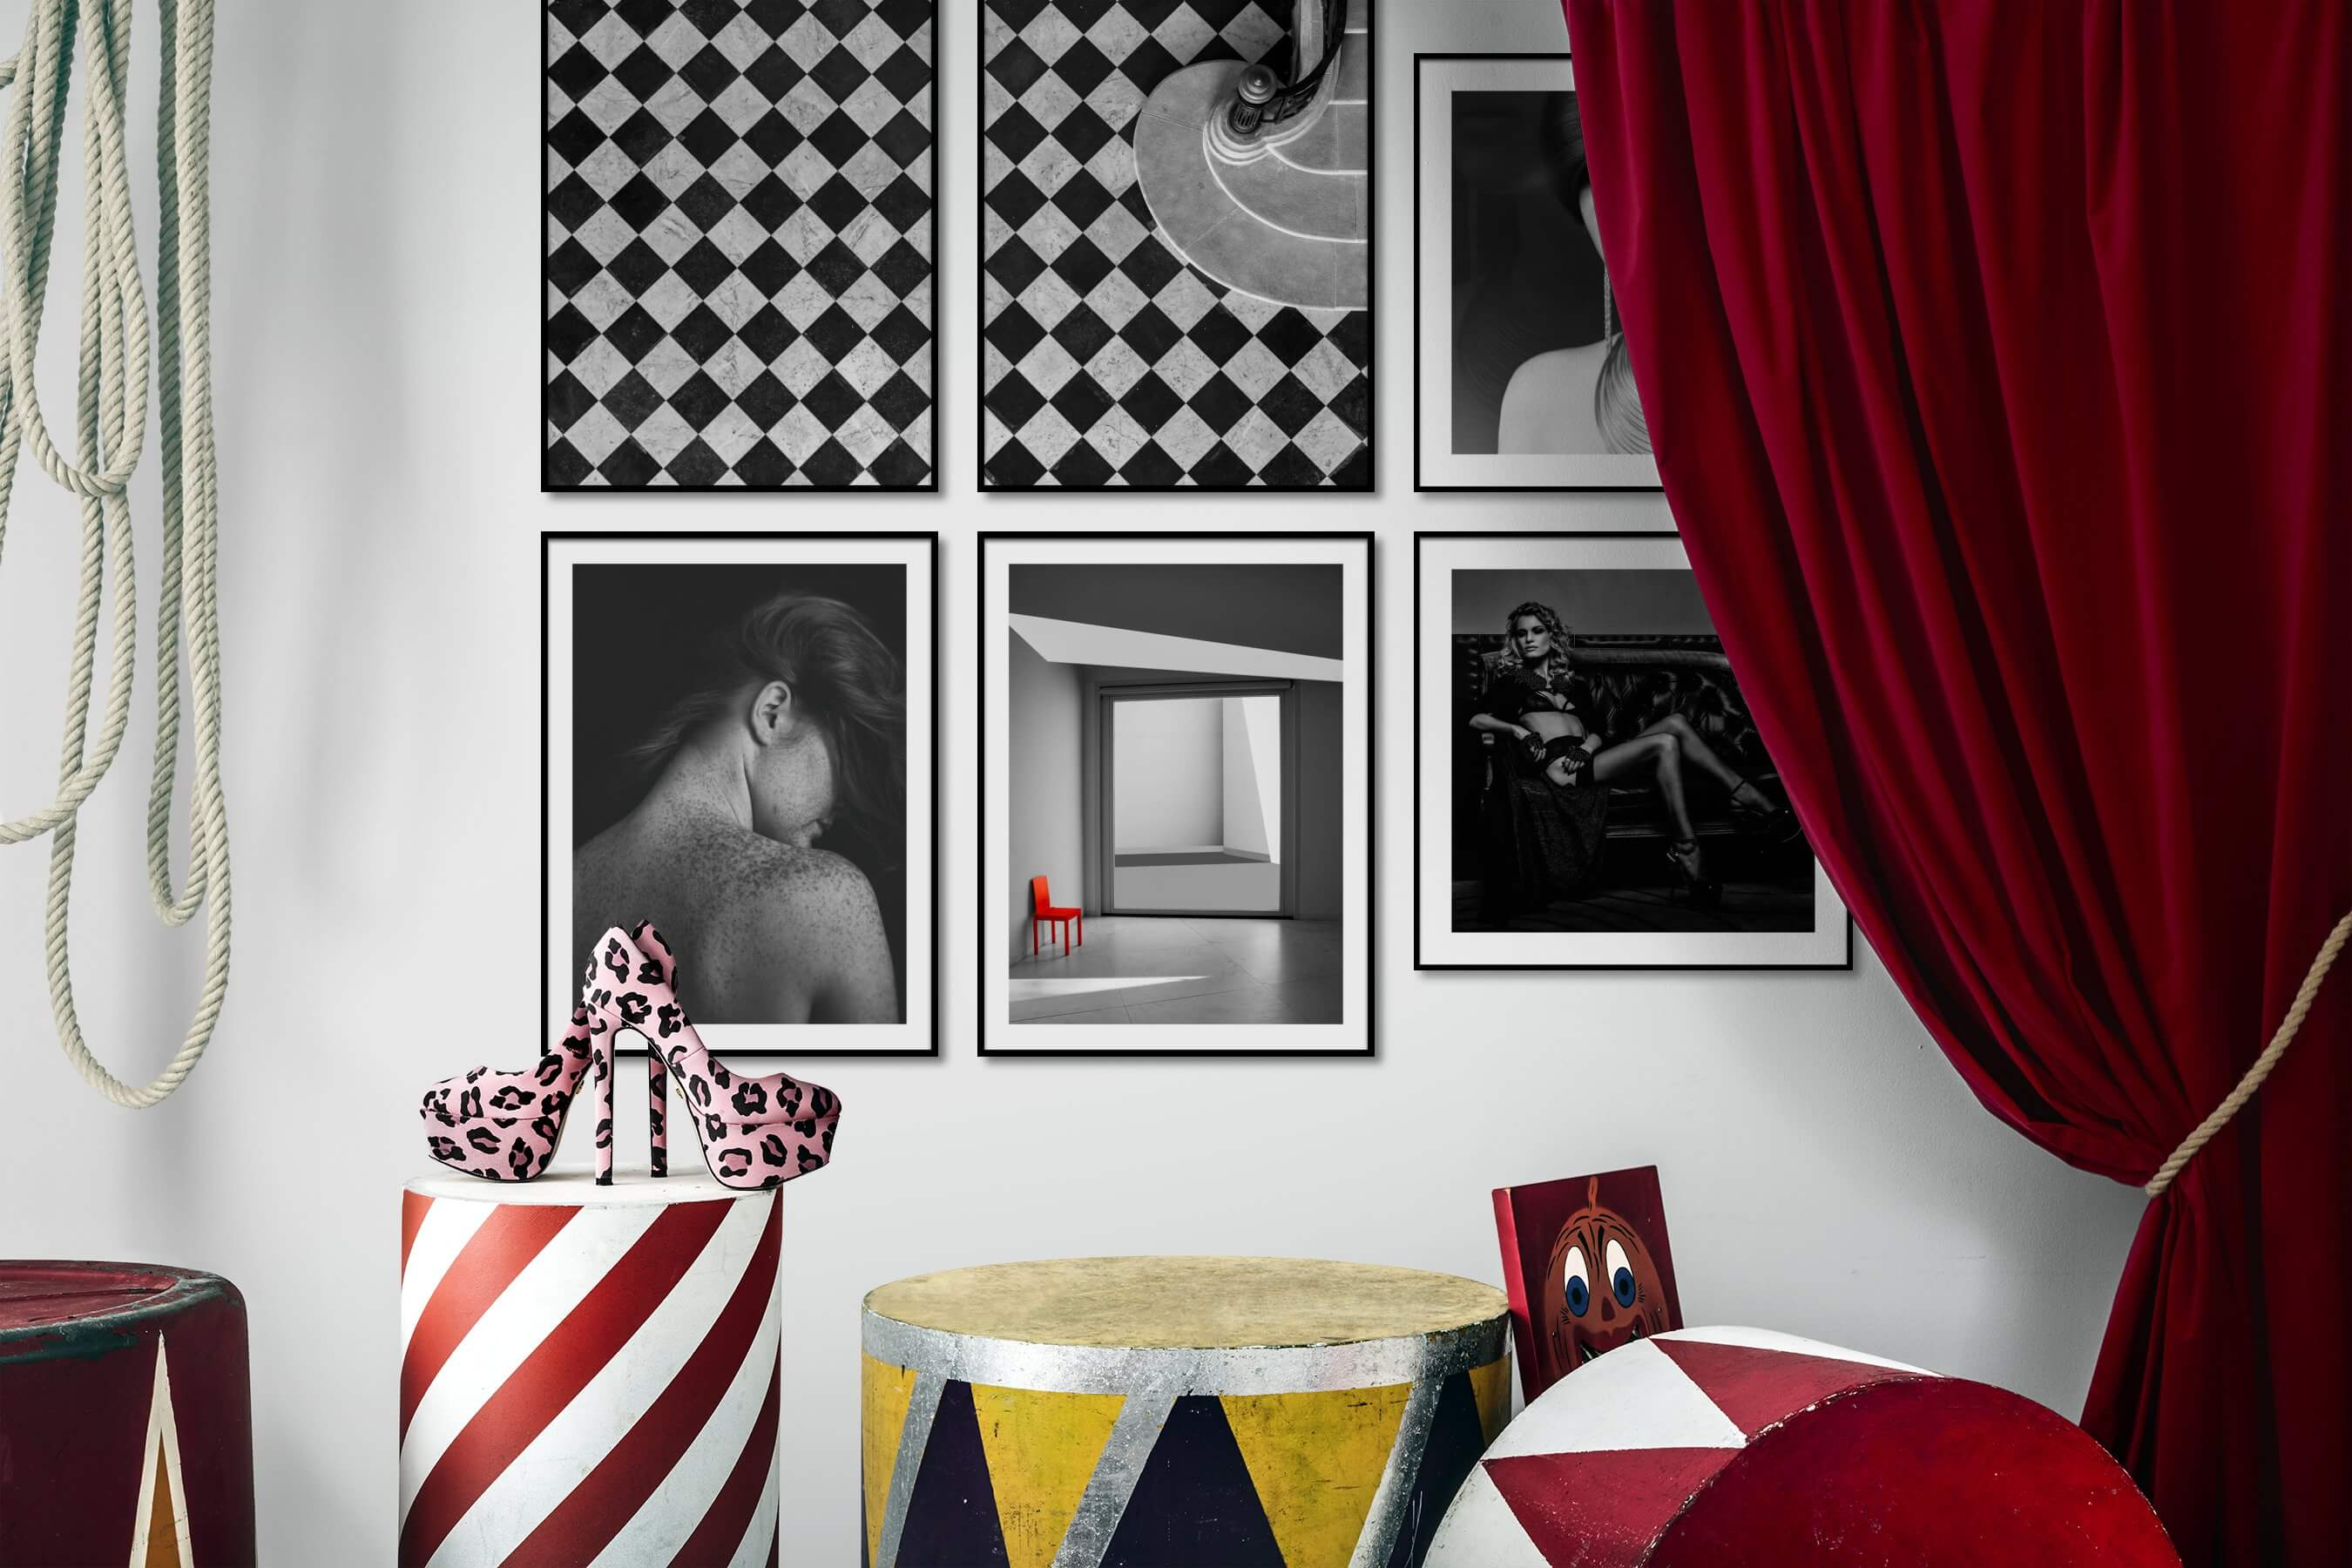 Gallery wall idea with six framed pictures arranged on a wall depicting Black & White, For the Maximalist, Fashion & Beauty, For the Moderate, and Vintage